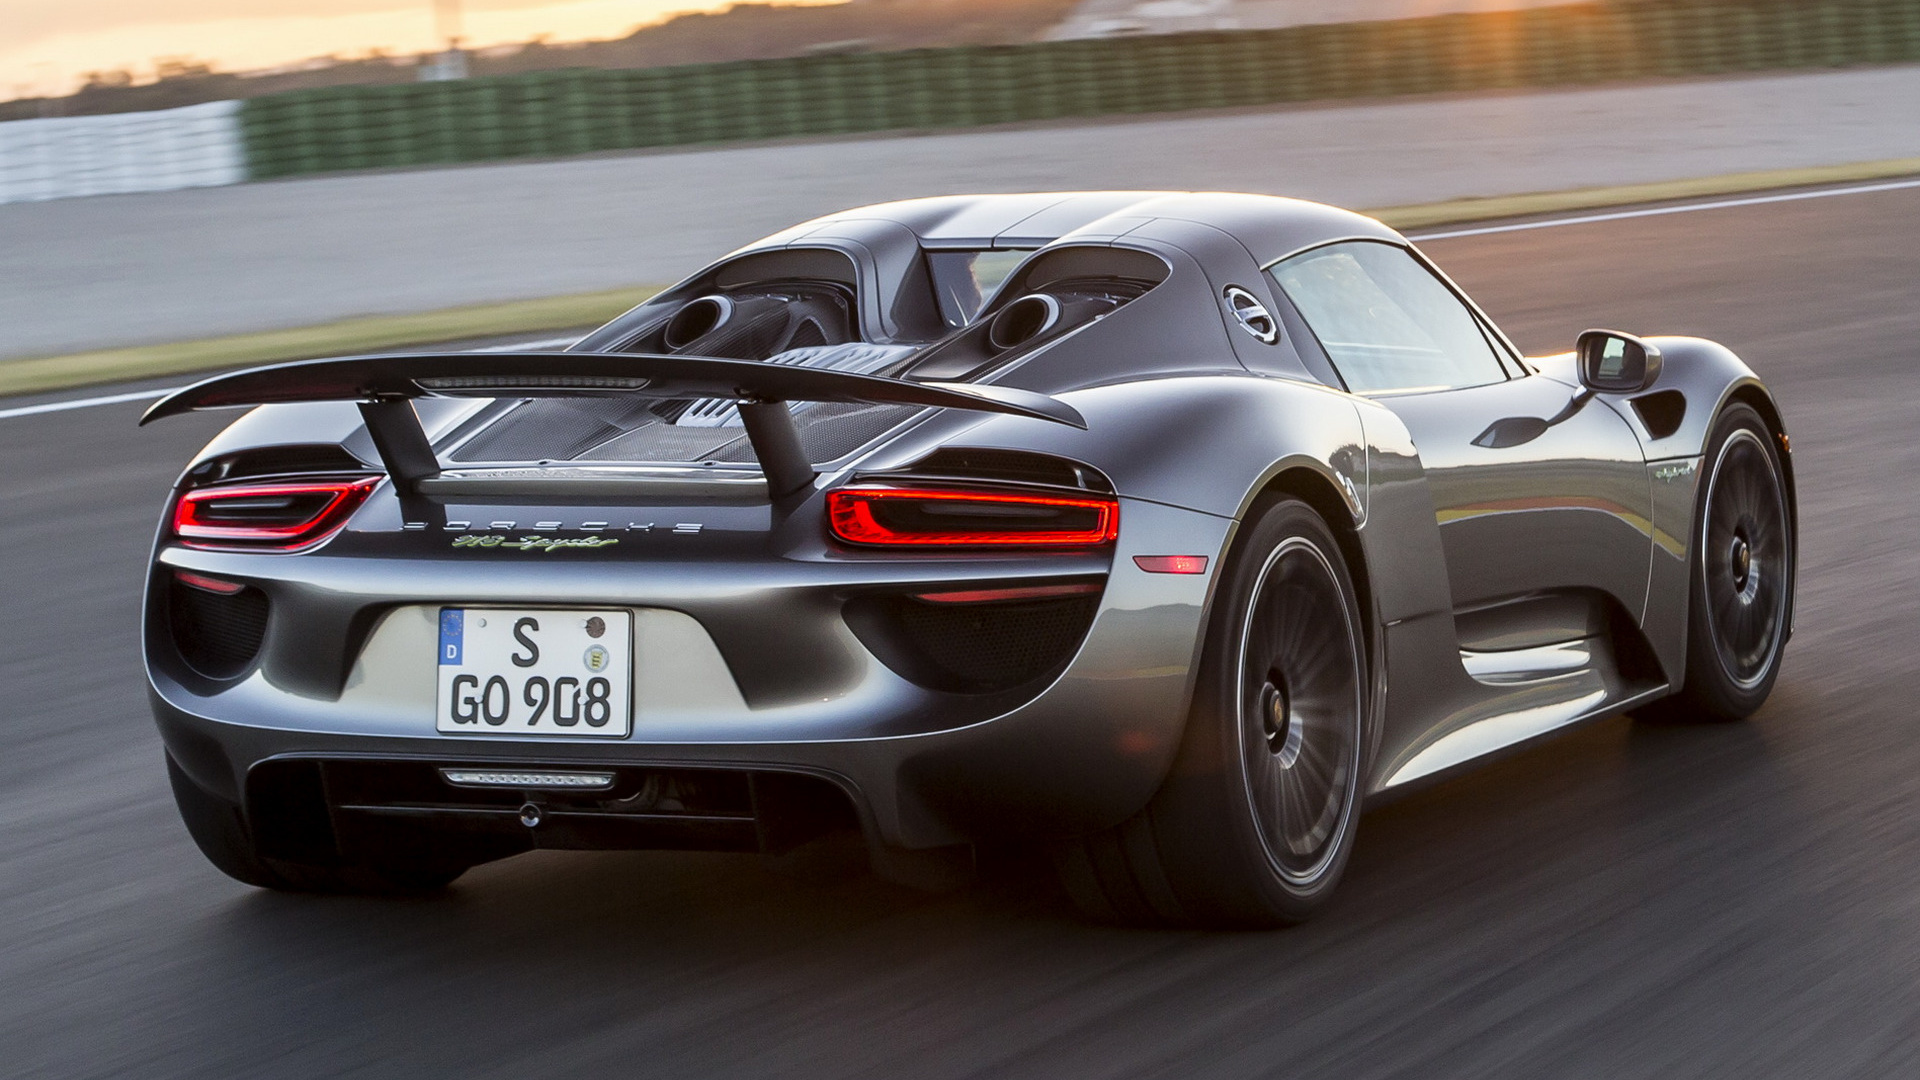 2014 Porsche 918 Spyder (US) - Wallpapers and HD Images ...